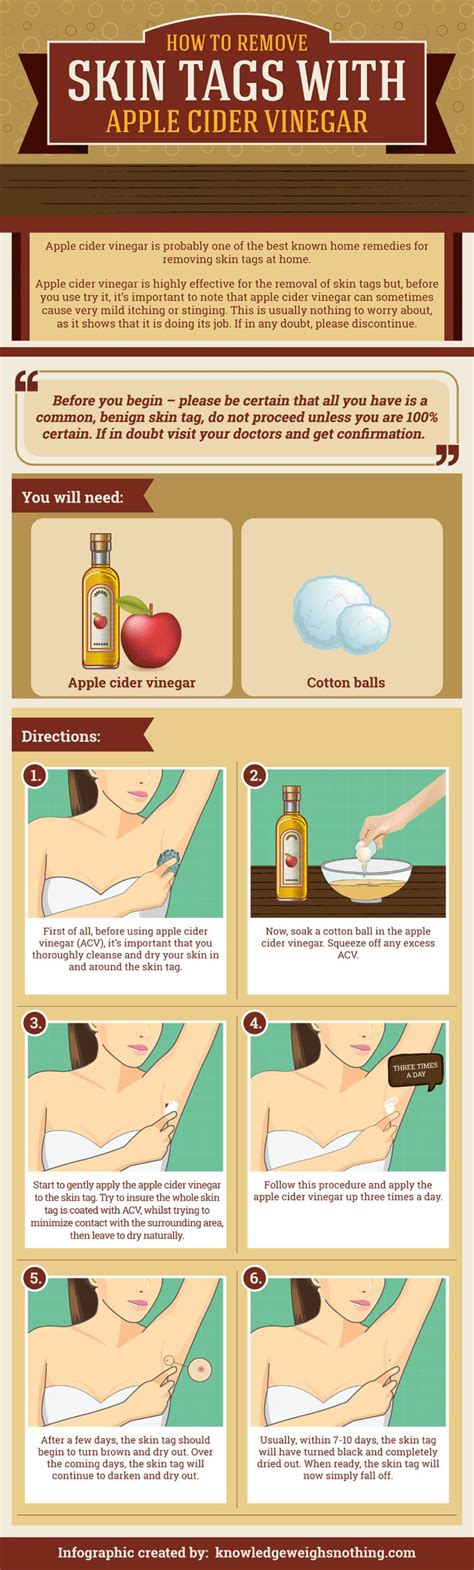 how to remove skin tags at home with acv see the